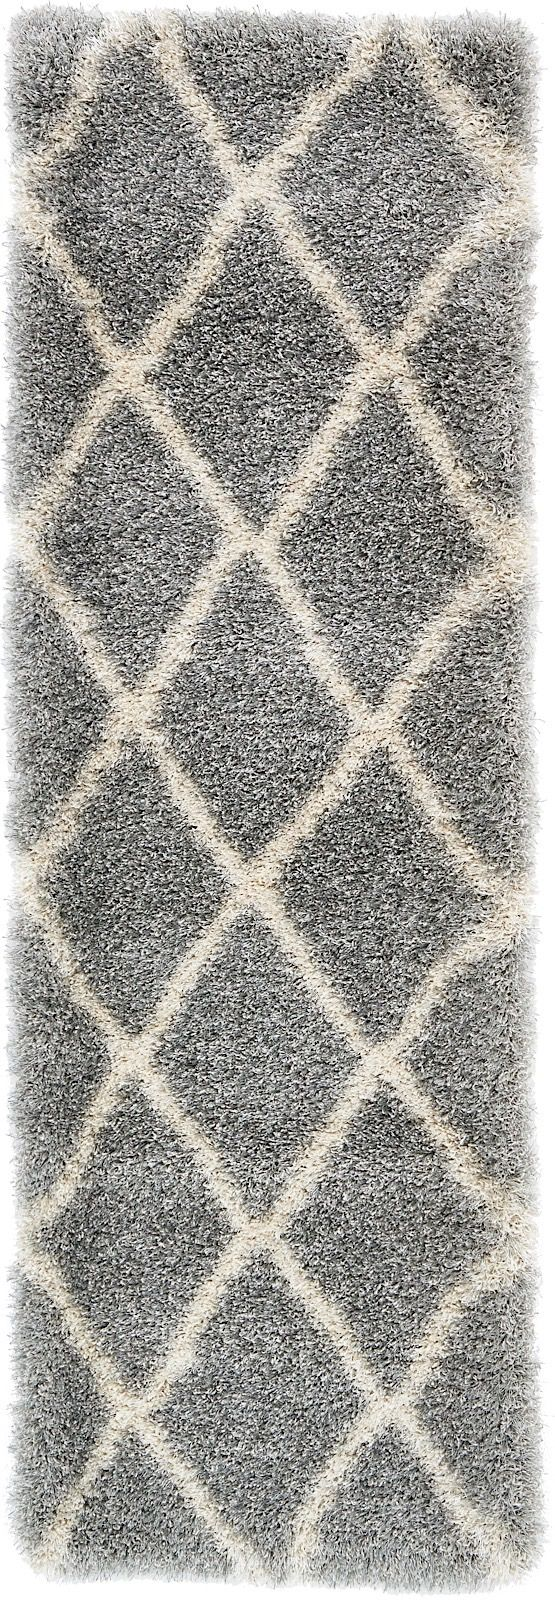 rugpal lavish shag shag area rug collection